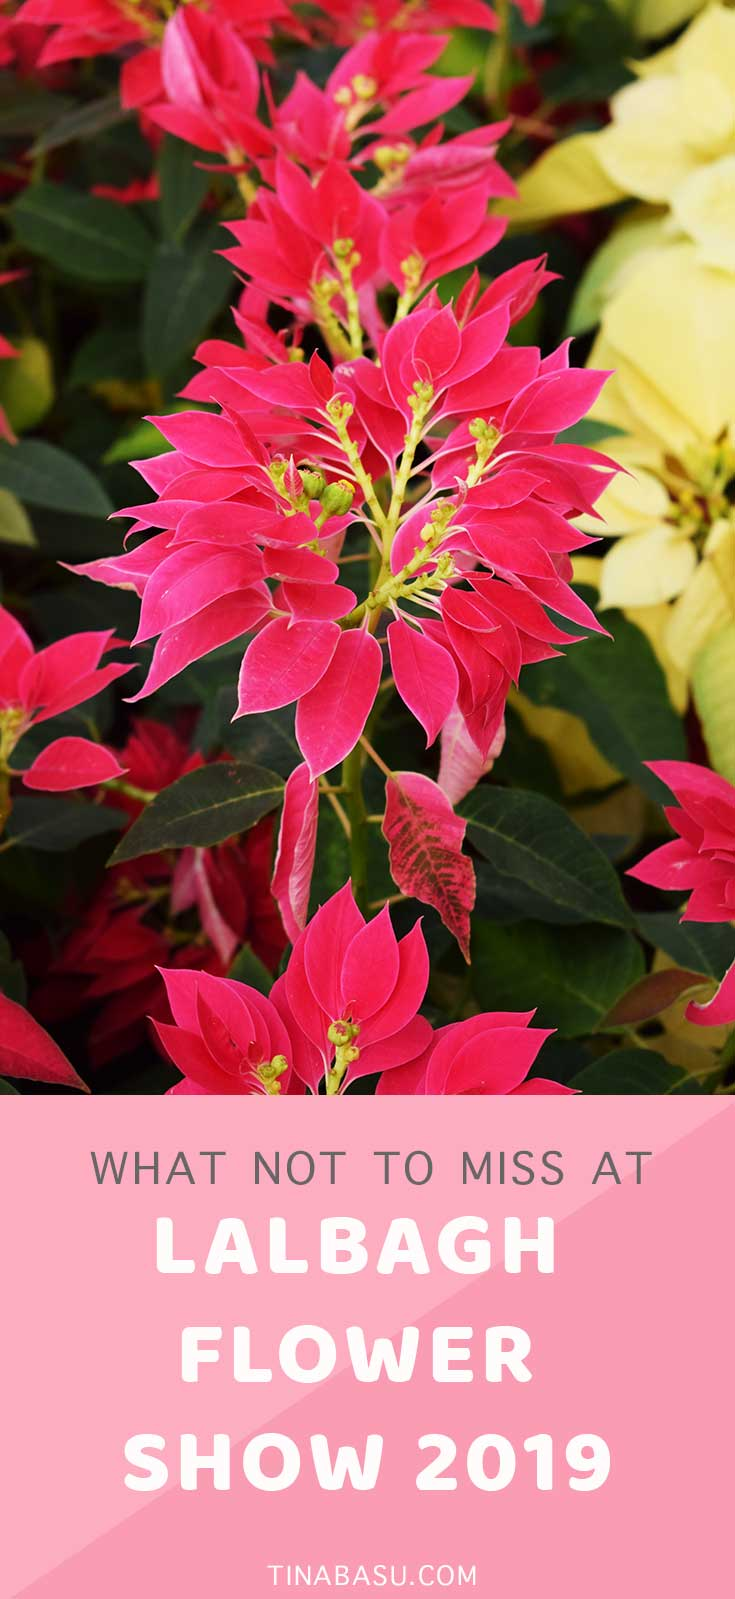 what not to miss at lalbagh flower show